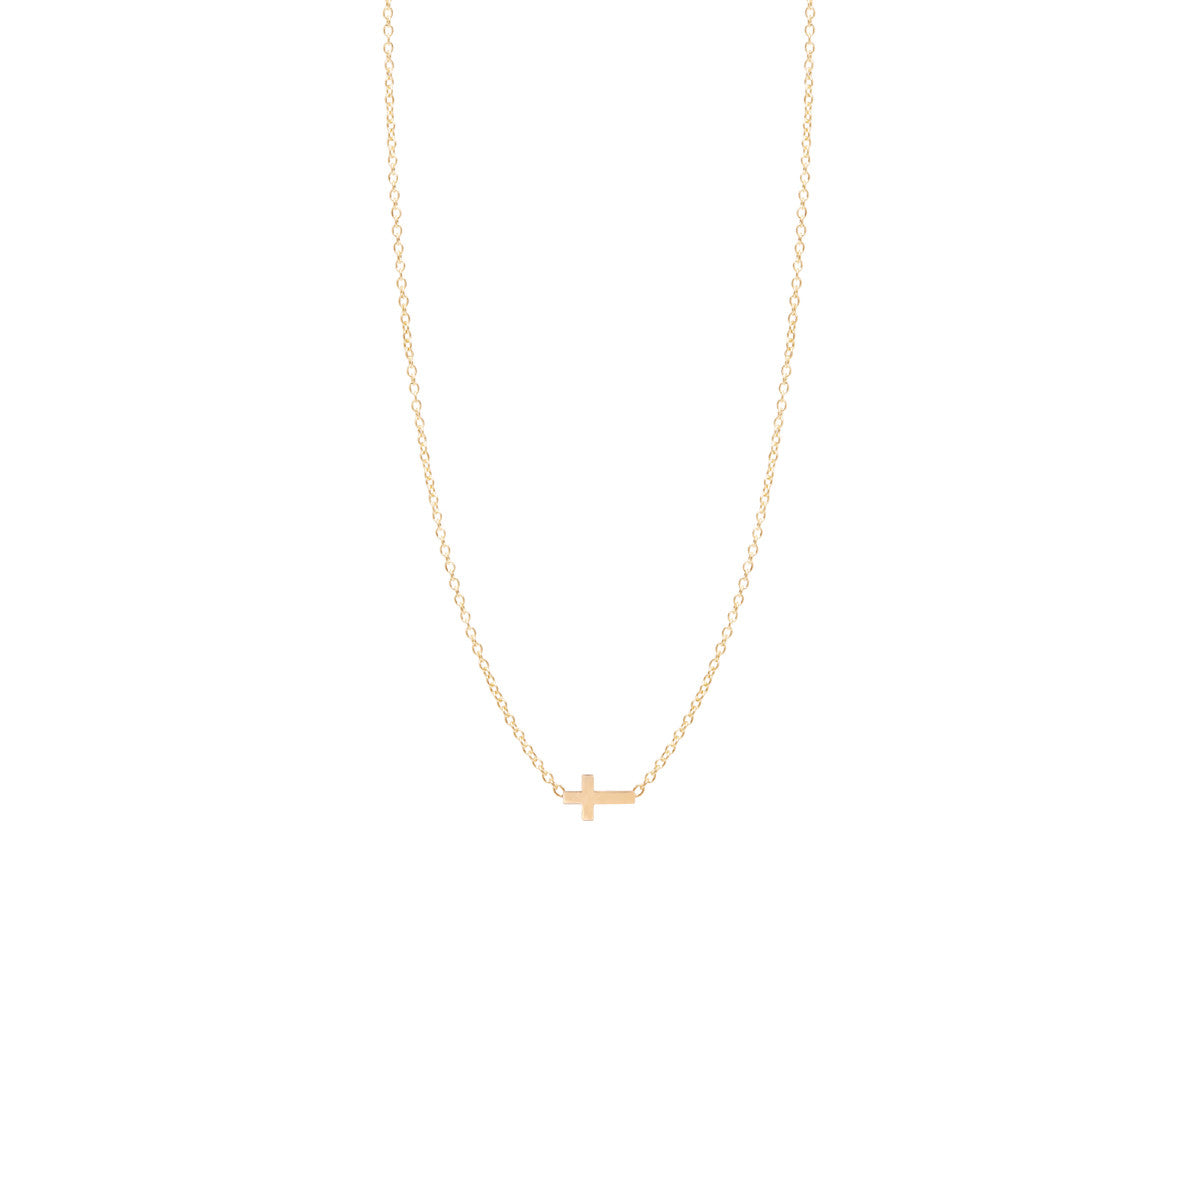 Zoë Chicco 14kt Yellow Gold Itty Bitty Cross Necklace